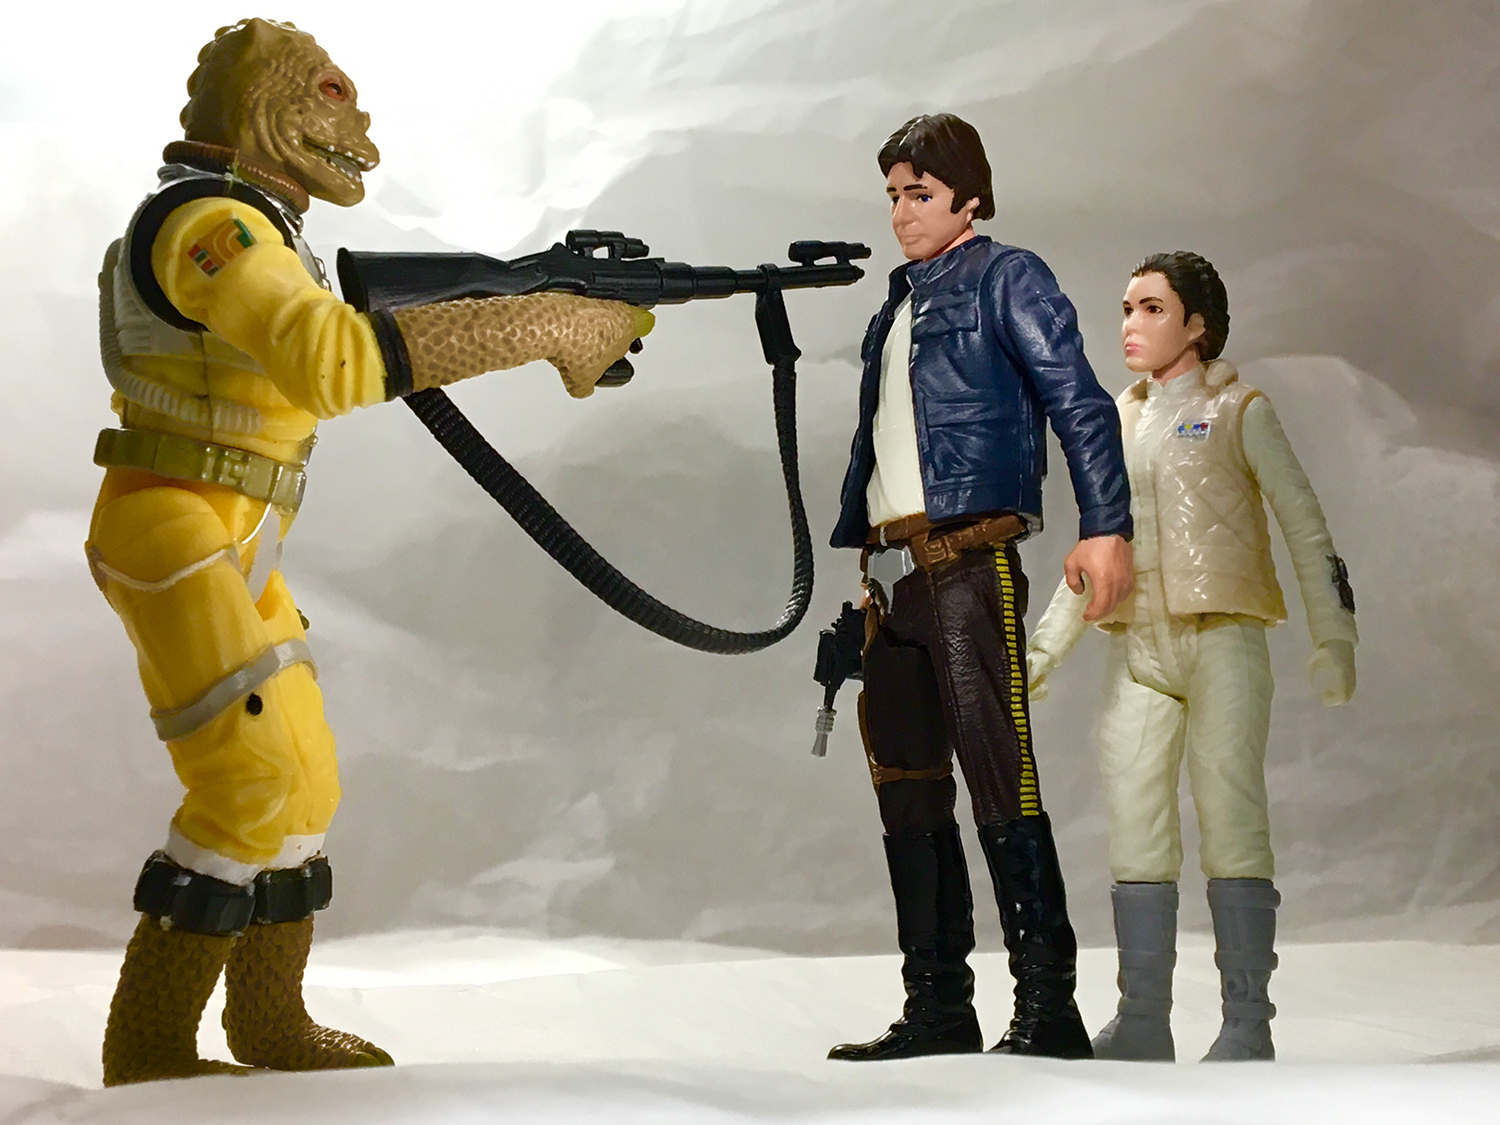 Michael Ahumada's Star Wars Action Figure Photography